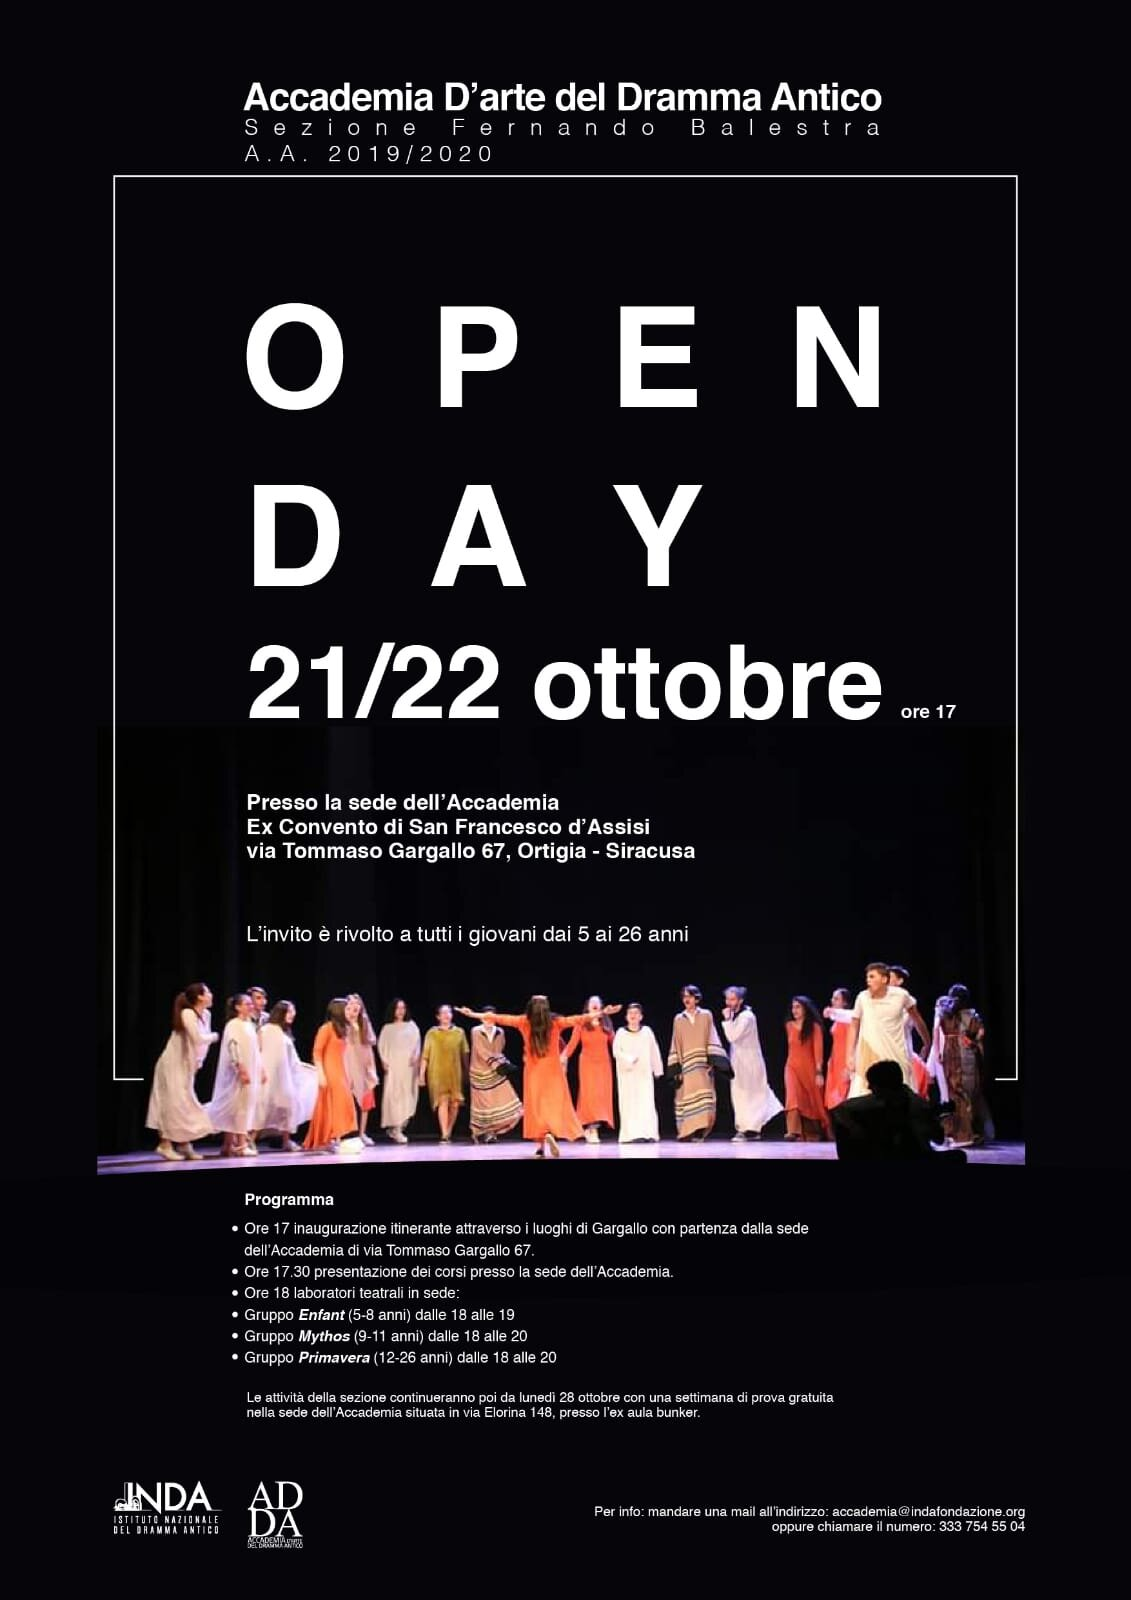 open day accademia.jpg